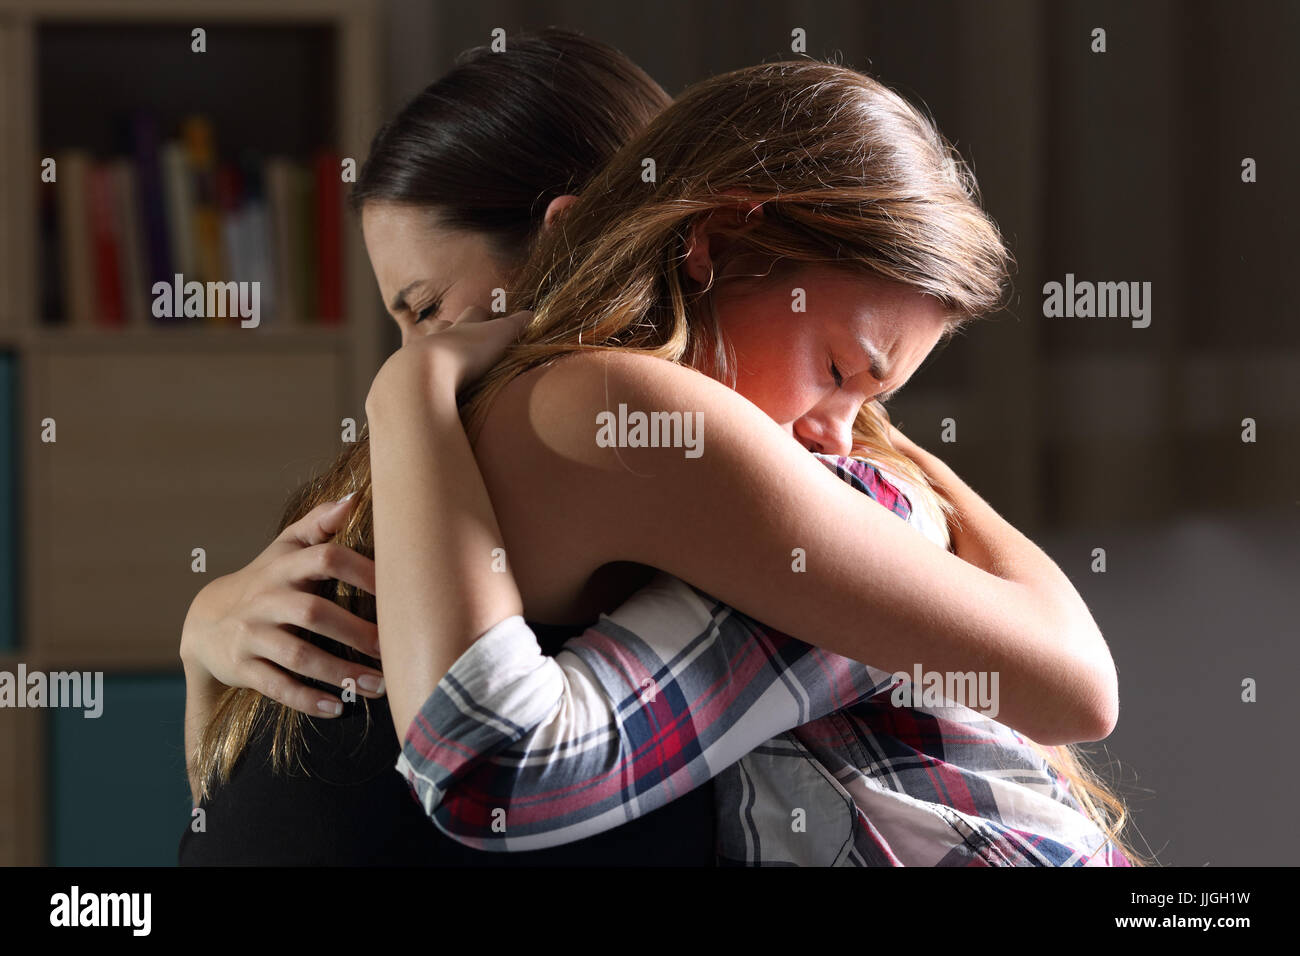 Side view of two sad good friends embracing in a bedroom in a house interior with a dark light in the background - Stock Image